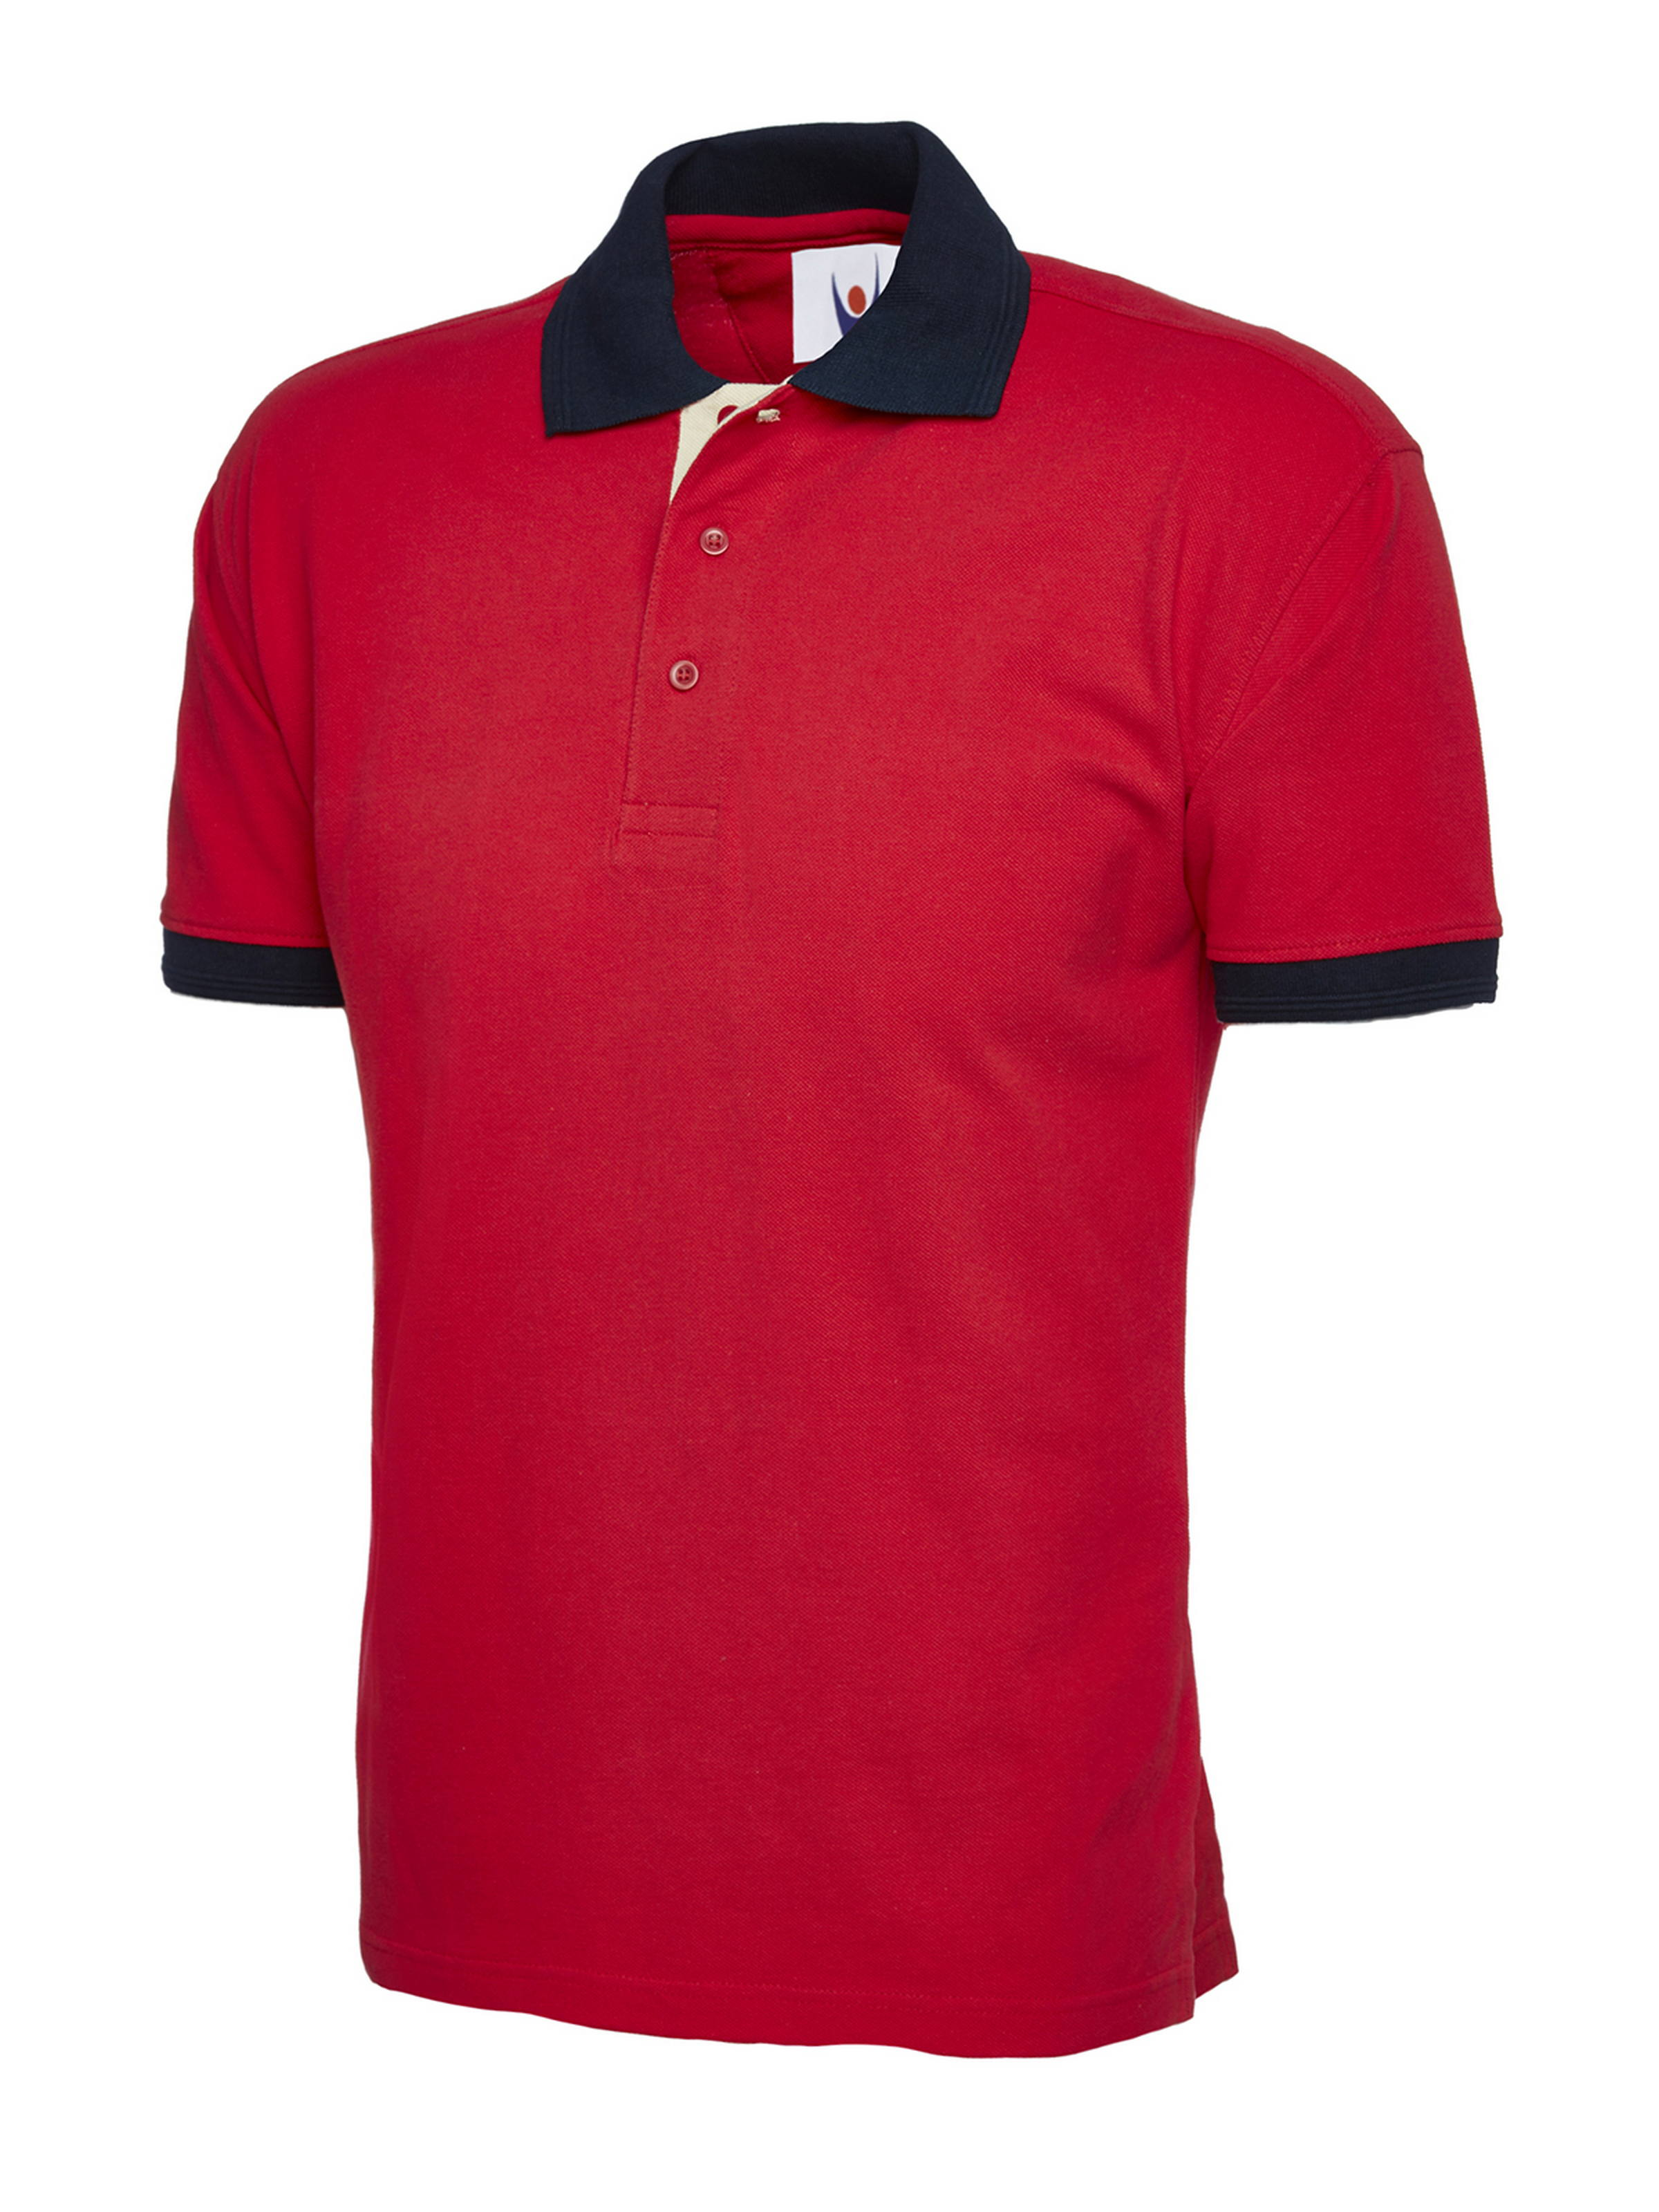 107 Contrast Polo Shirt